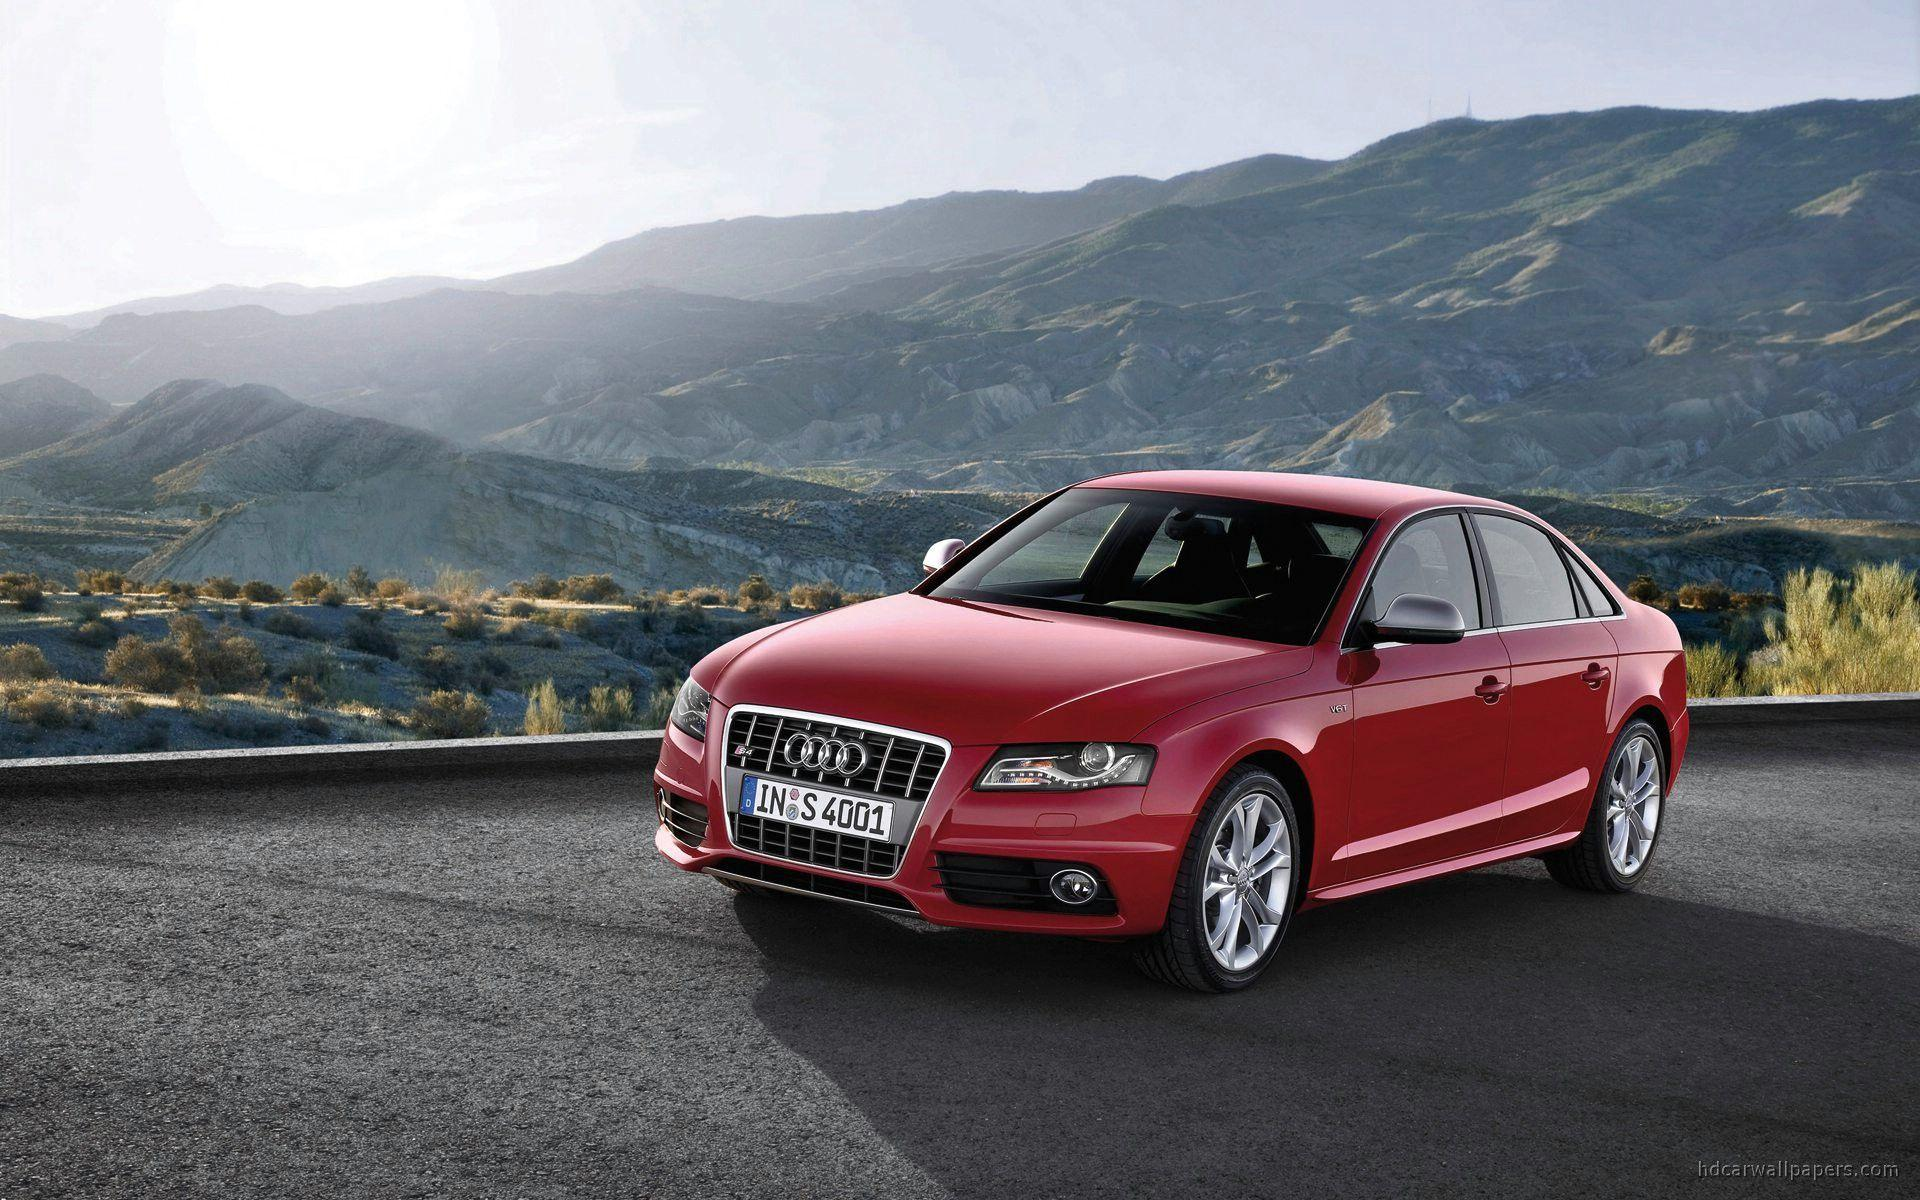 2009 Audi S4 Wallpapers